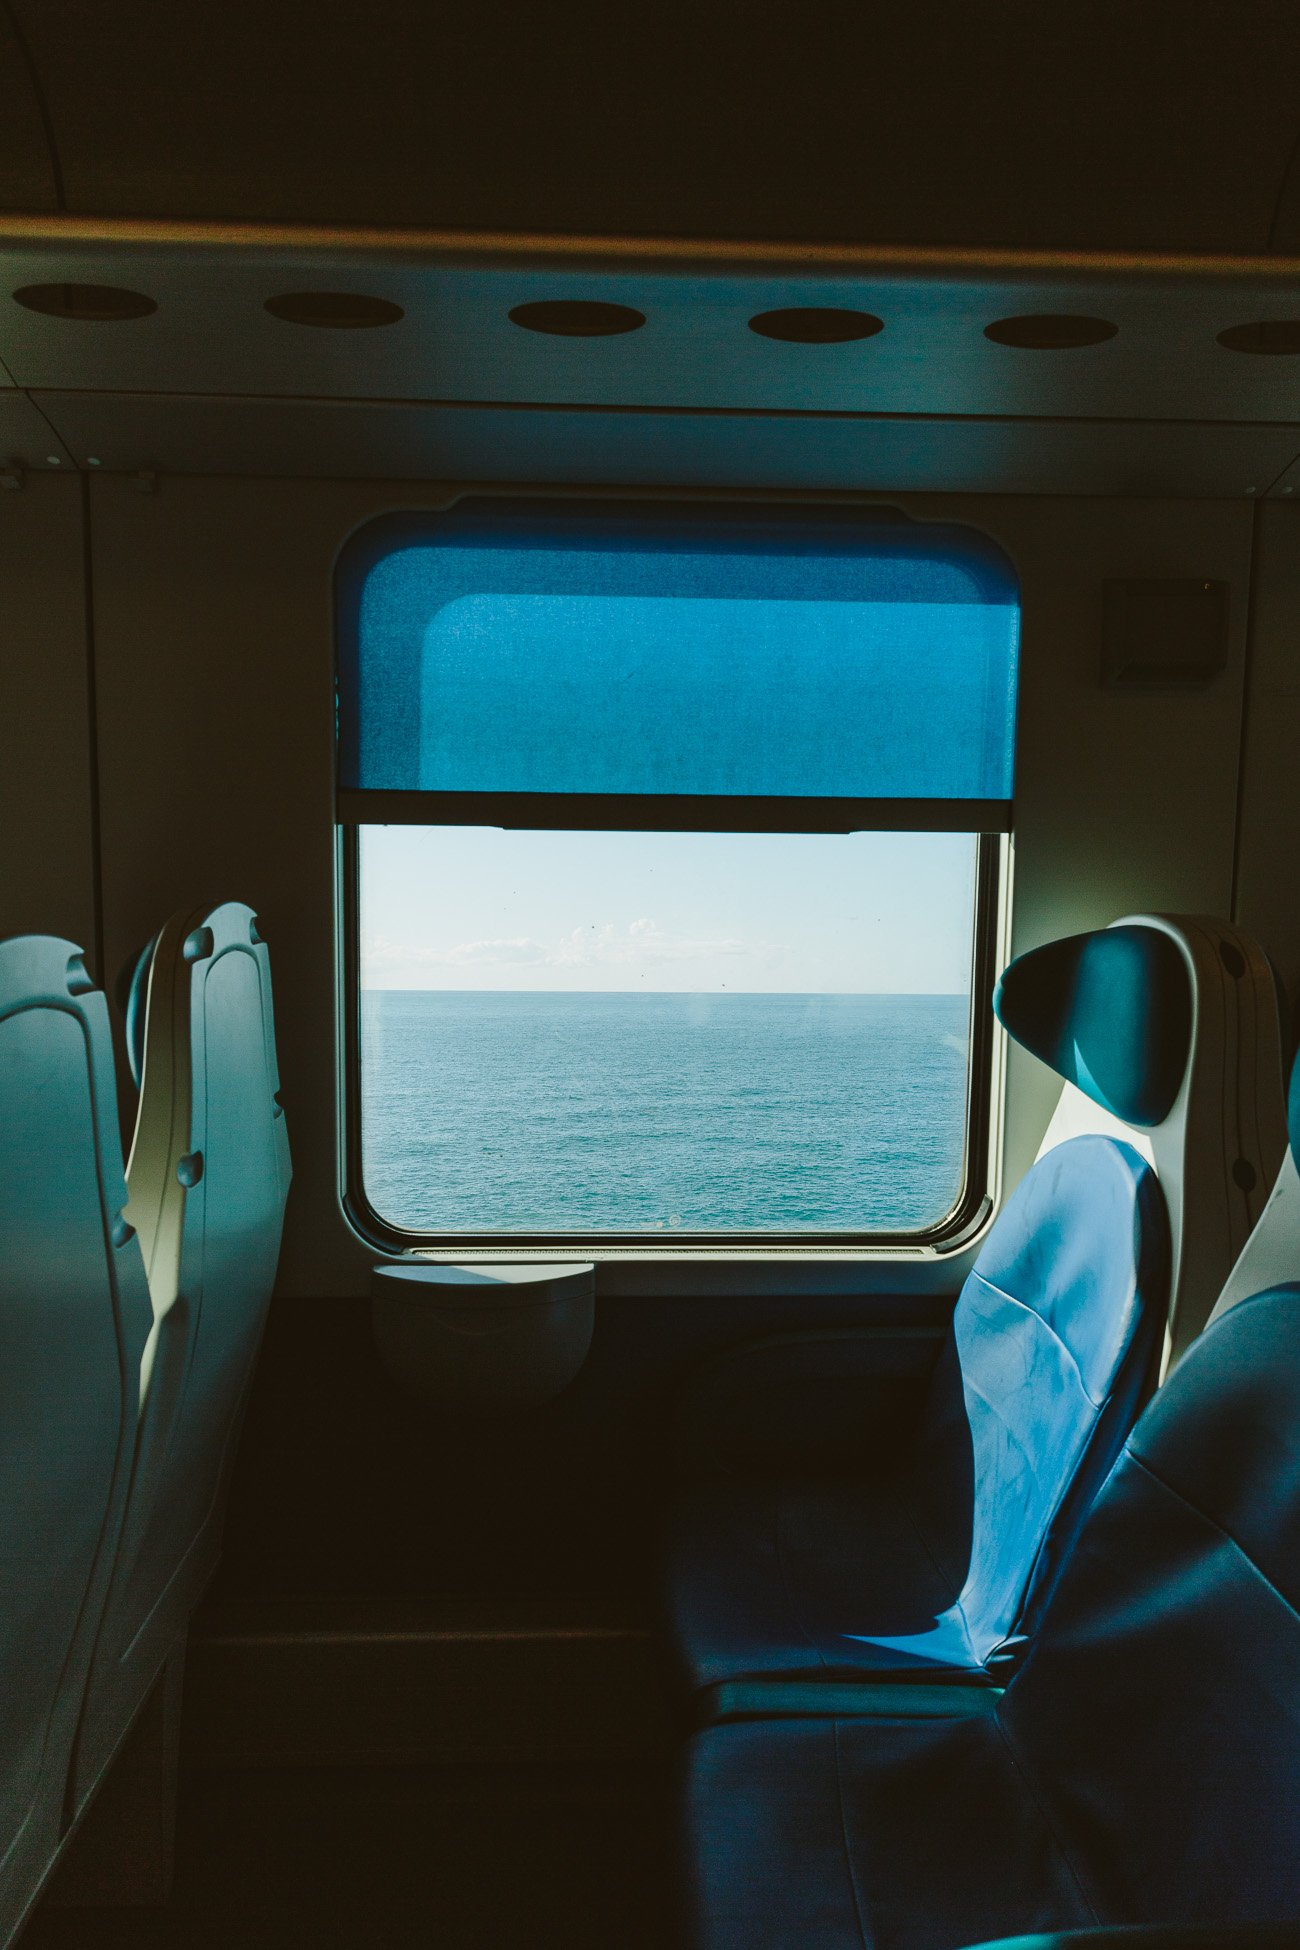 Train ride to Cinque Terre